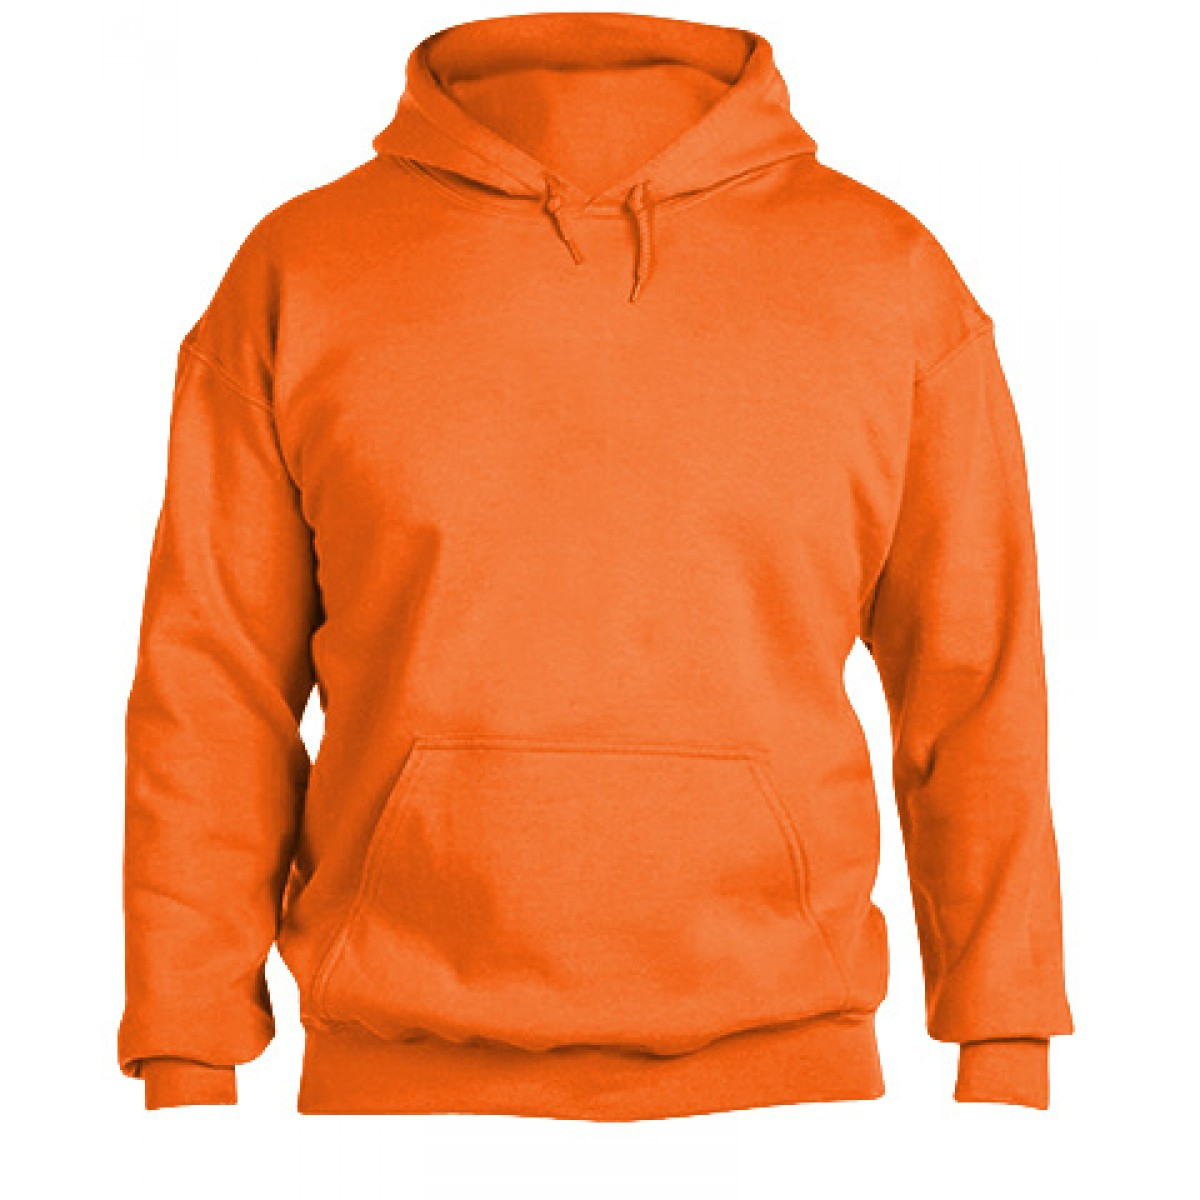 Solid Hooded Sweatshirt  50/50 Heavy Blend-Safety Orange-2XL